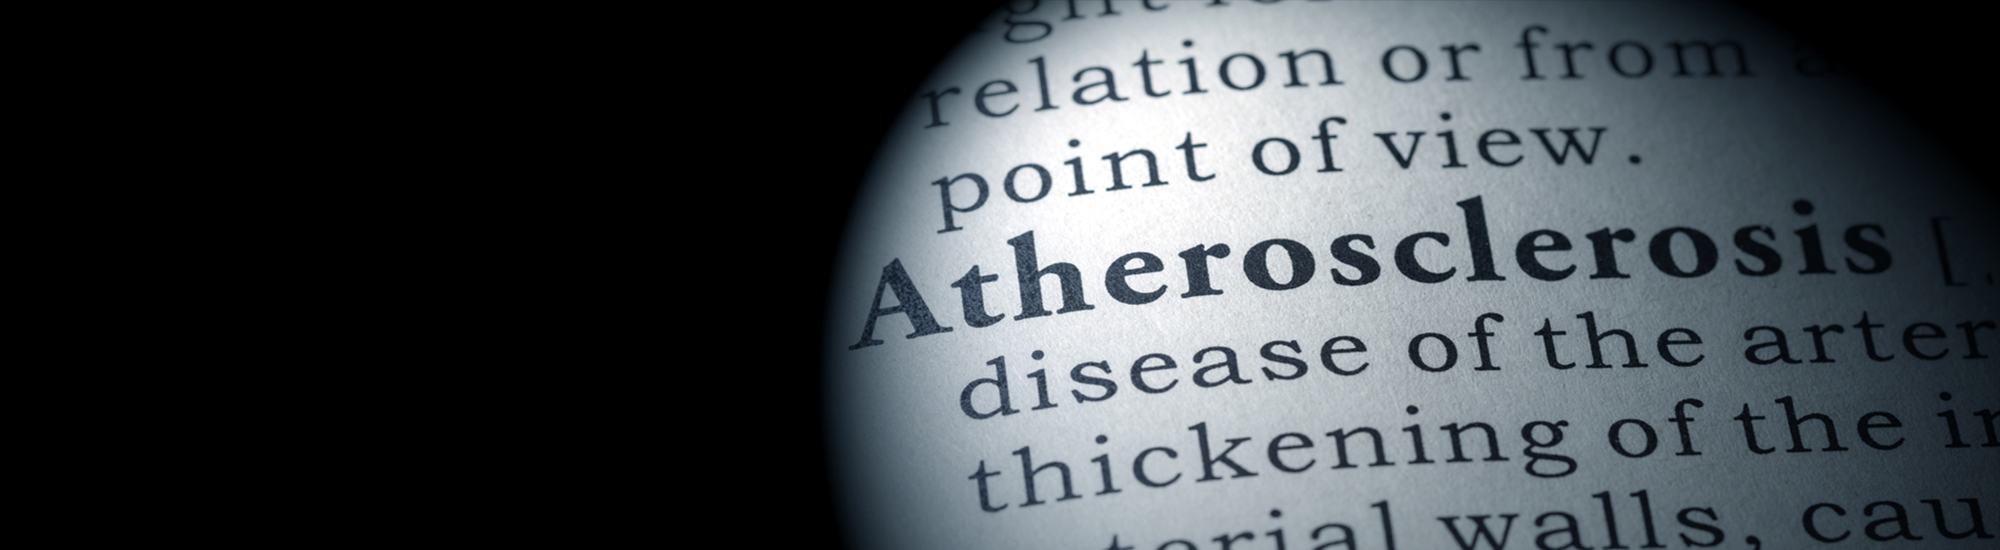 Ayurvedic treatment for What is Atherosclerosis